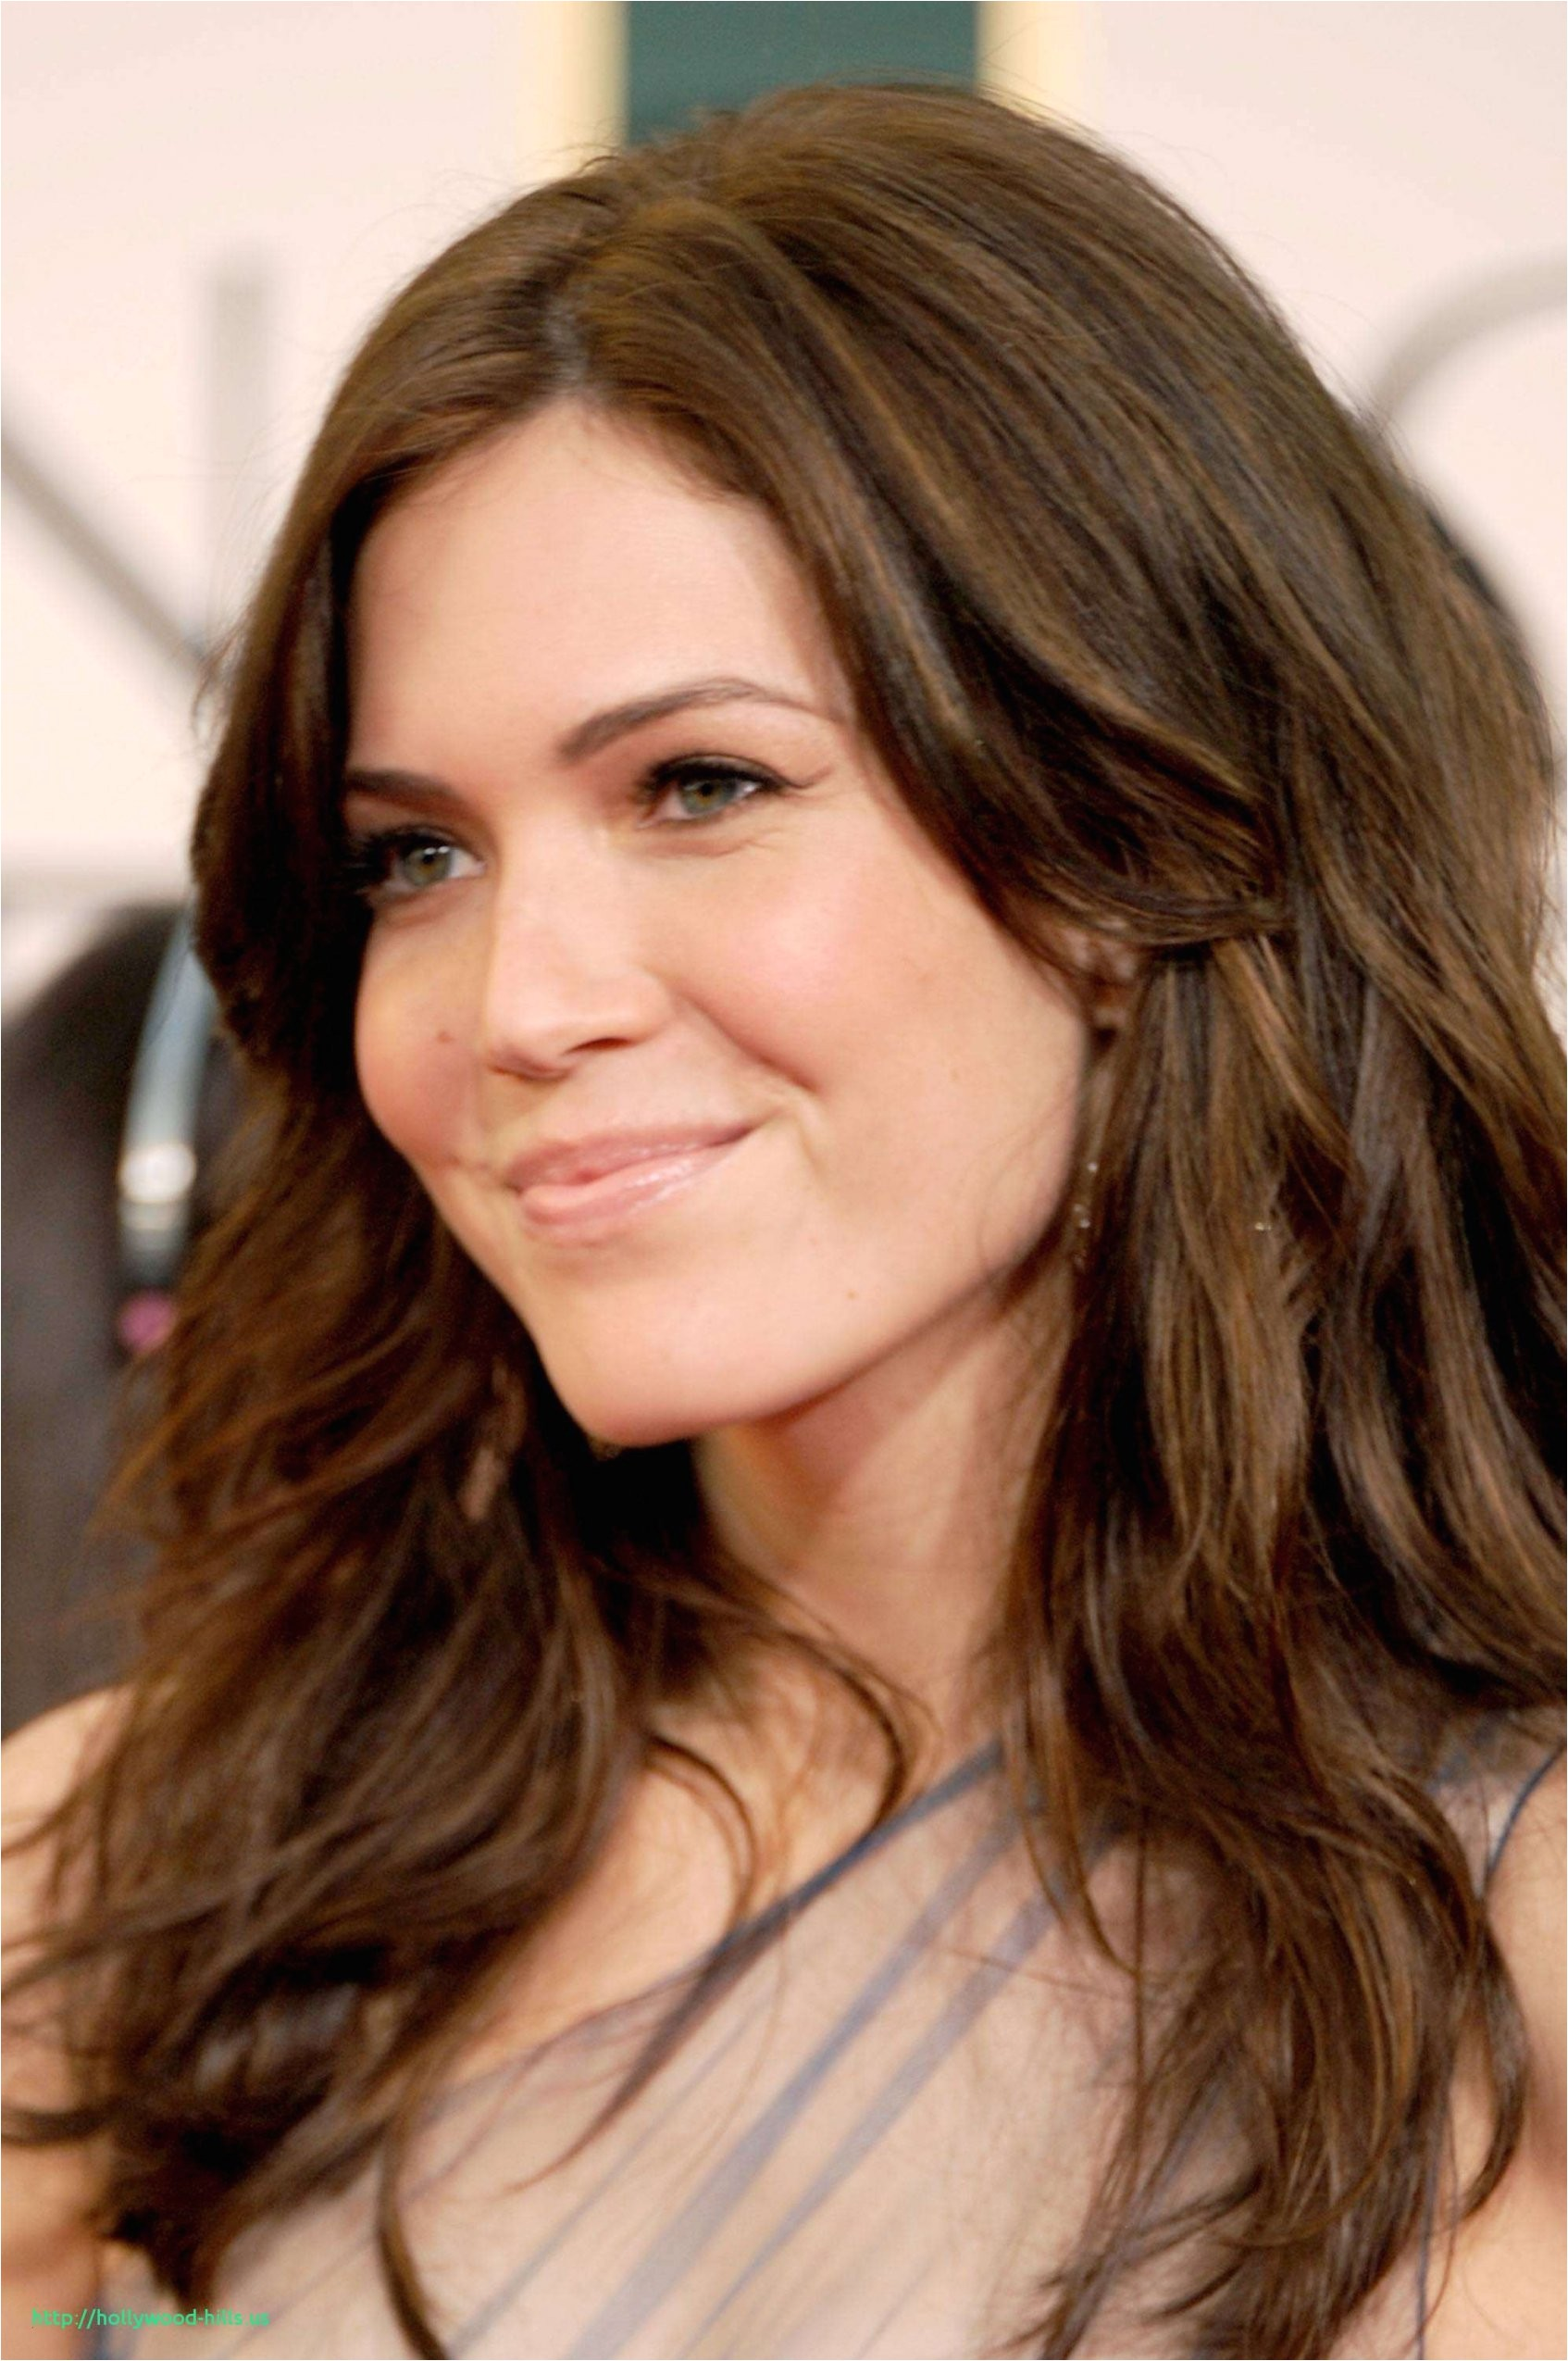 Medium Length Hairstyles for Overweight Women Awesome Medium Length Hairstyles for Round Faces Awesome Haircut for